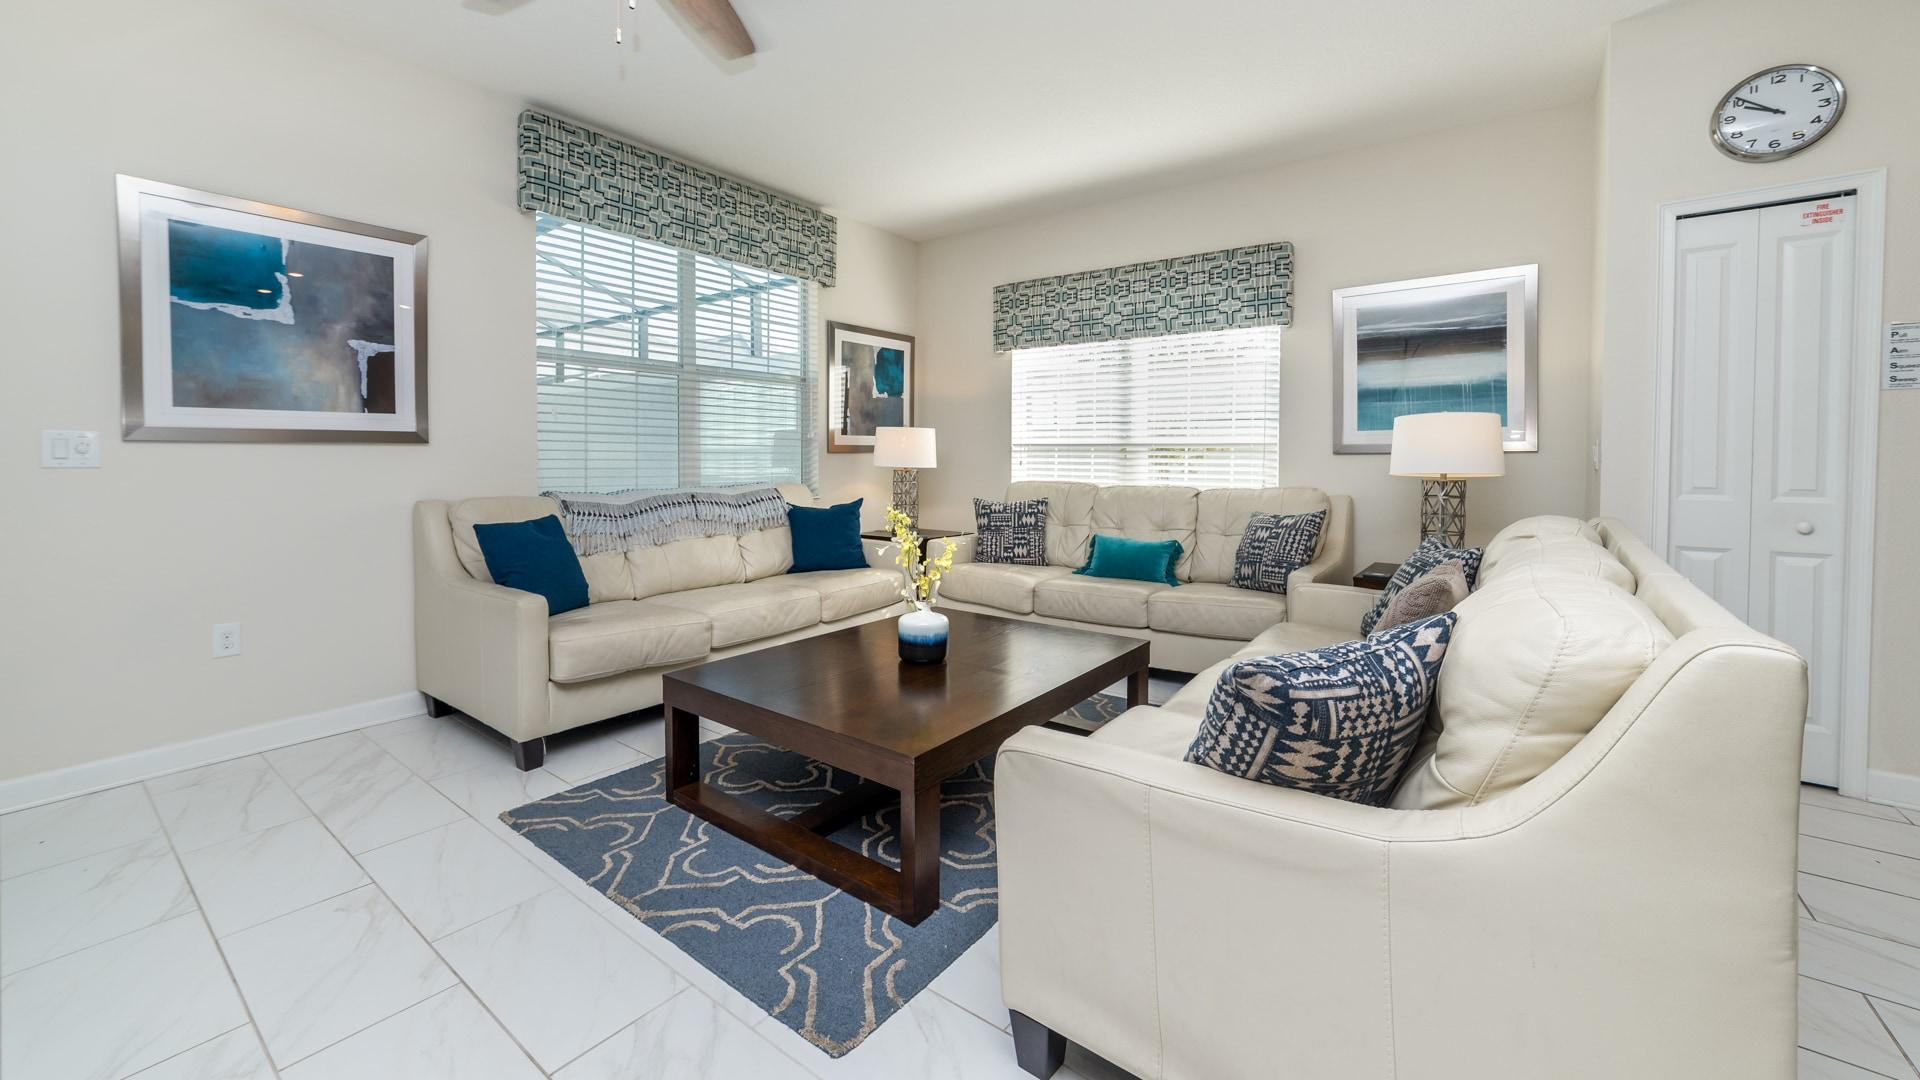 Property Image 1 - Spacious Townhome With Private Splash Pool